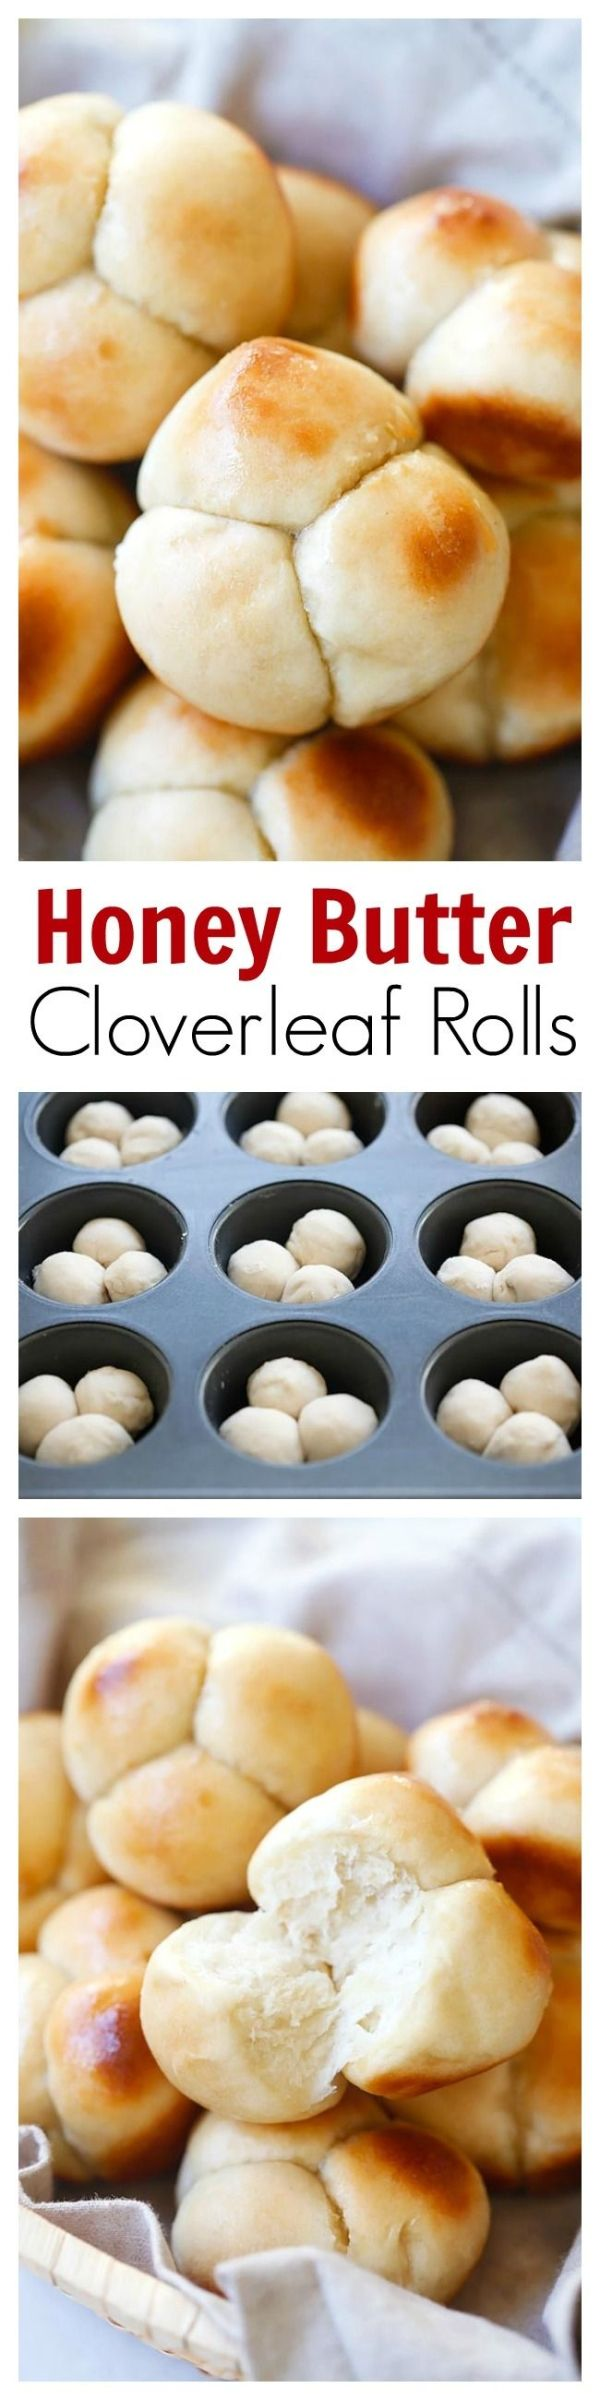 Honey Butter Cloverleaf Rolls – soft, buttery, and sweet pull-apart cloverleaf rolls. Amazing homemade rolls that is perfect for family dinners, recipe by @browneyedbaker | rasamalaysia.com by shauna